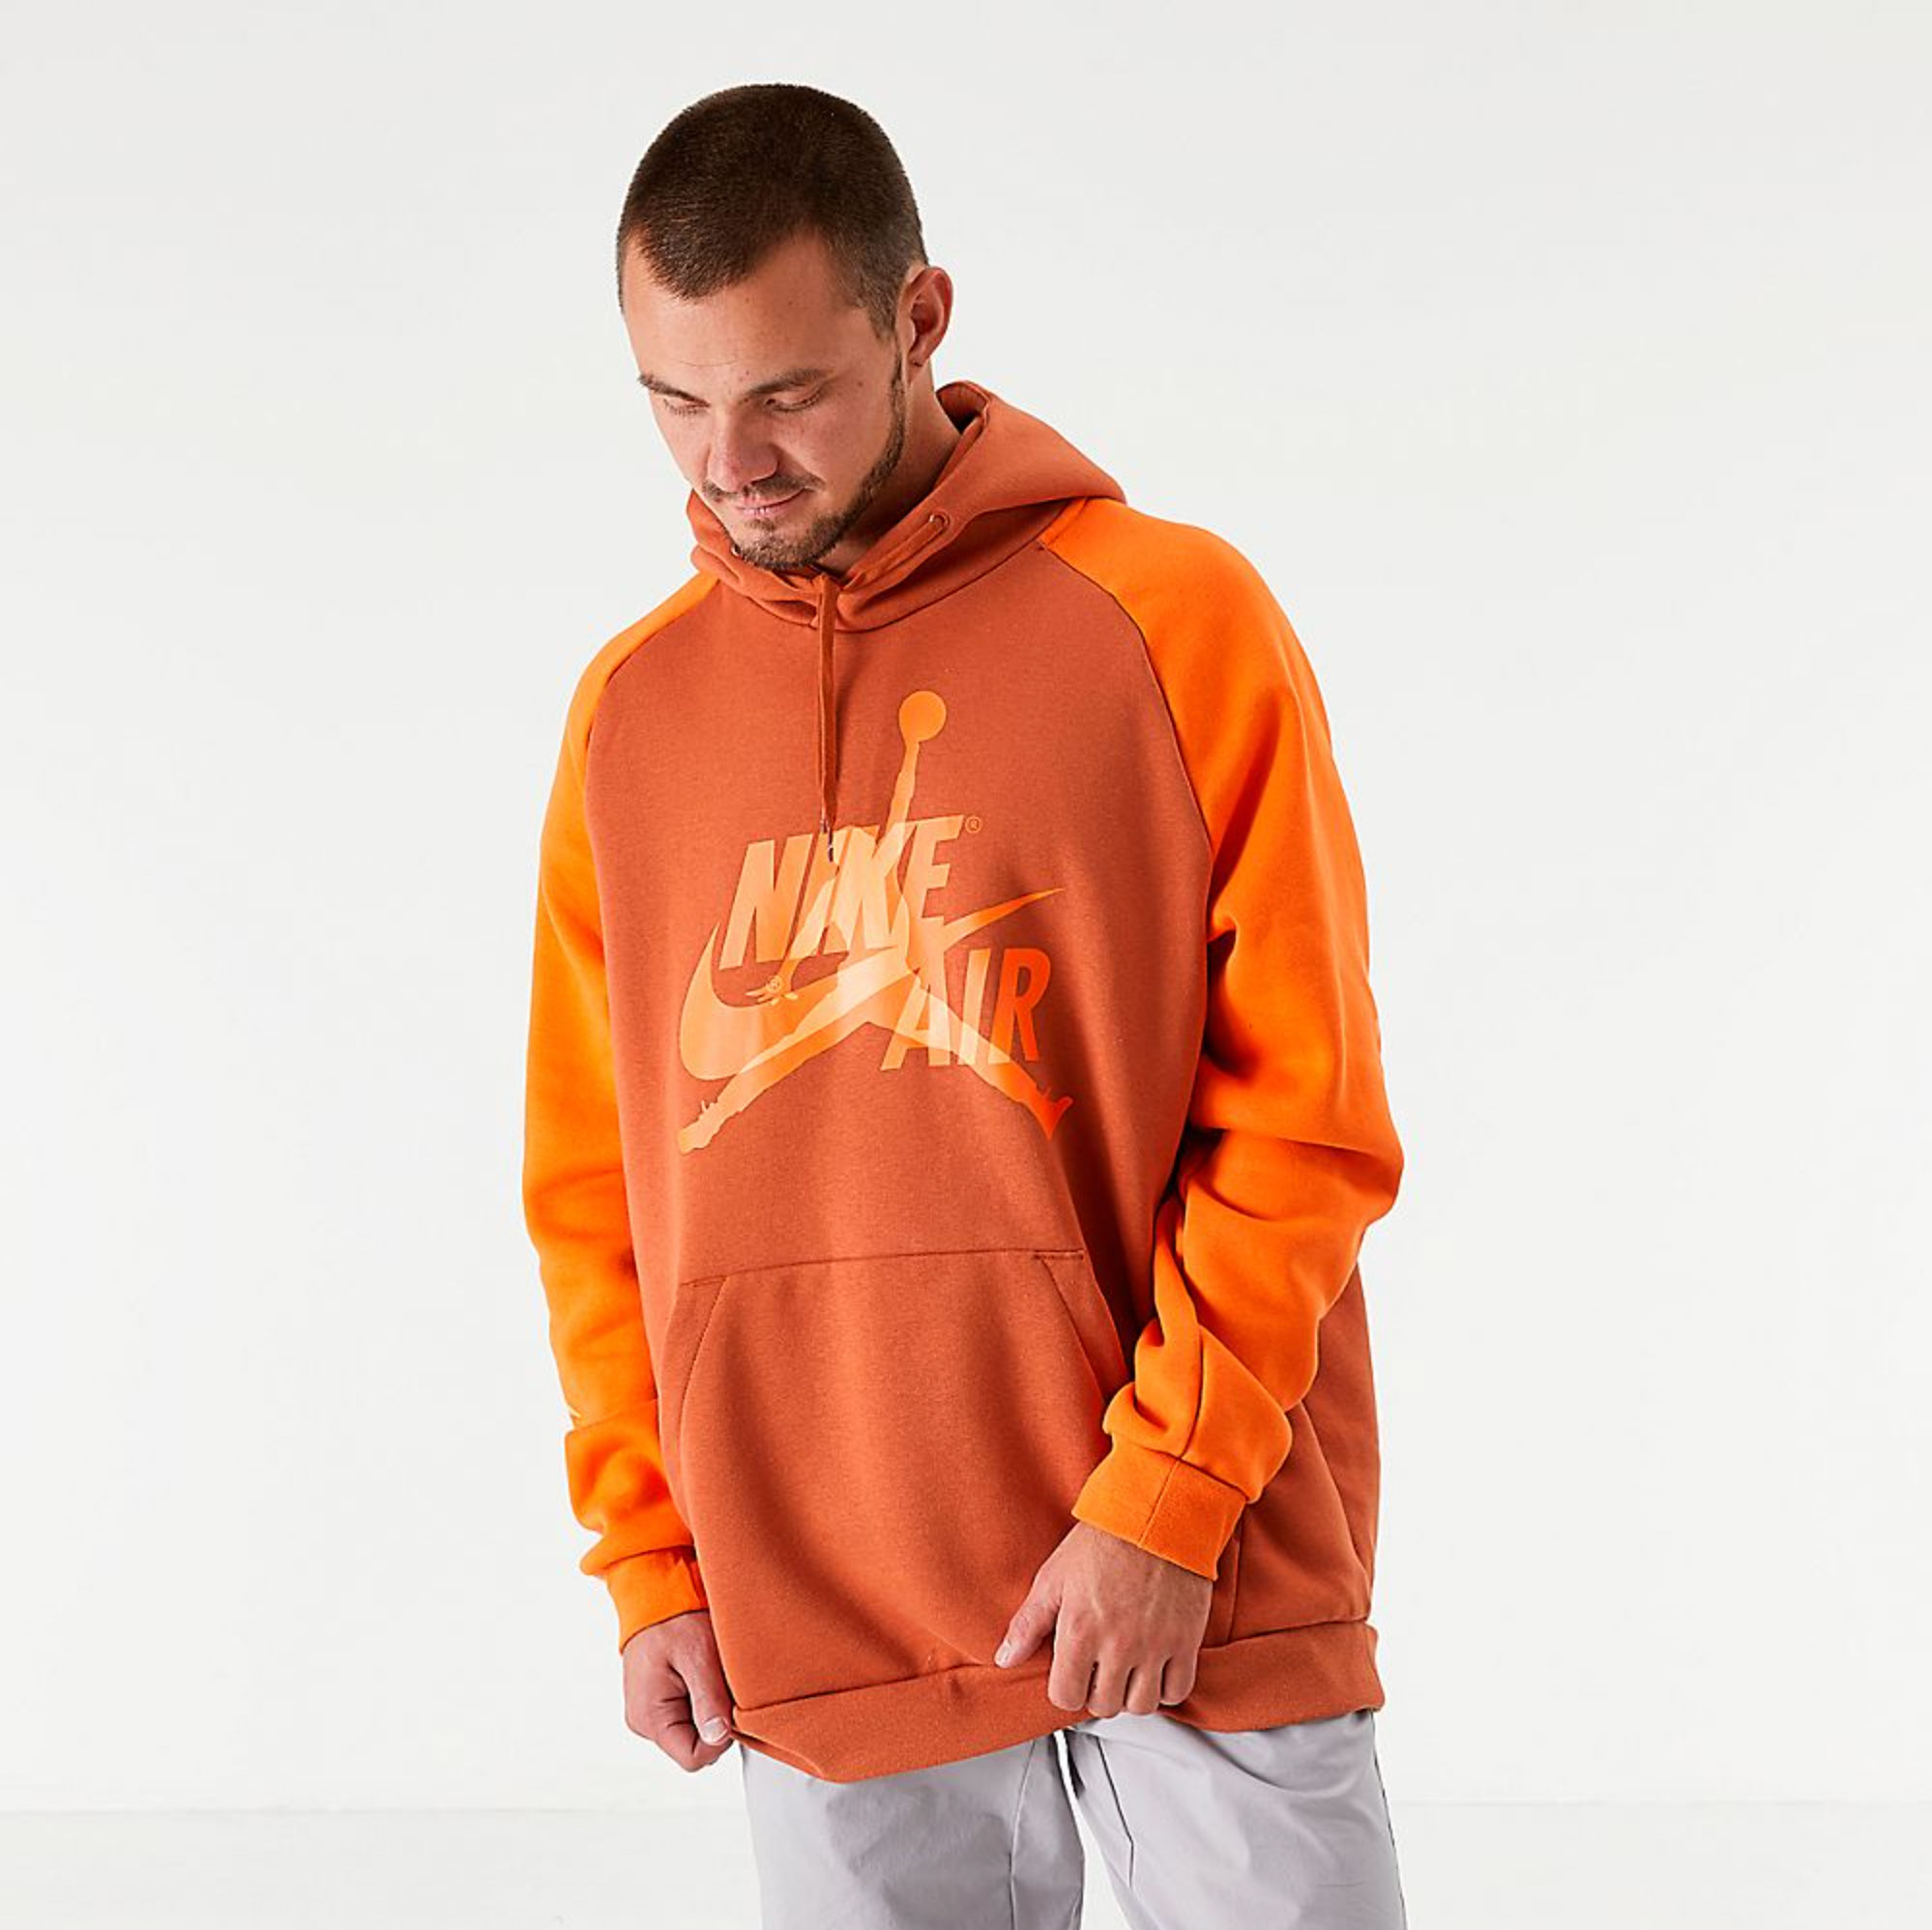 jordan-shattered-backboard-hoodie-match-2